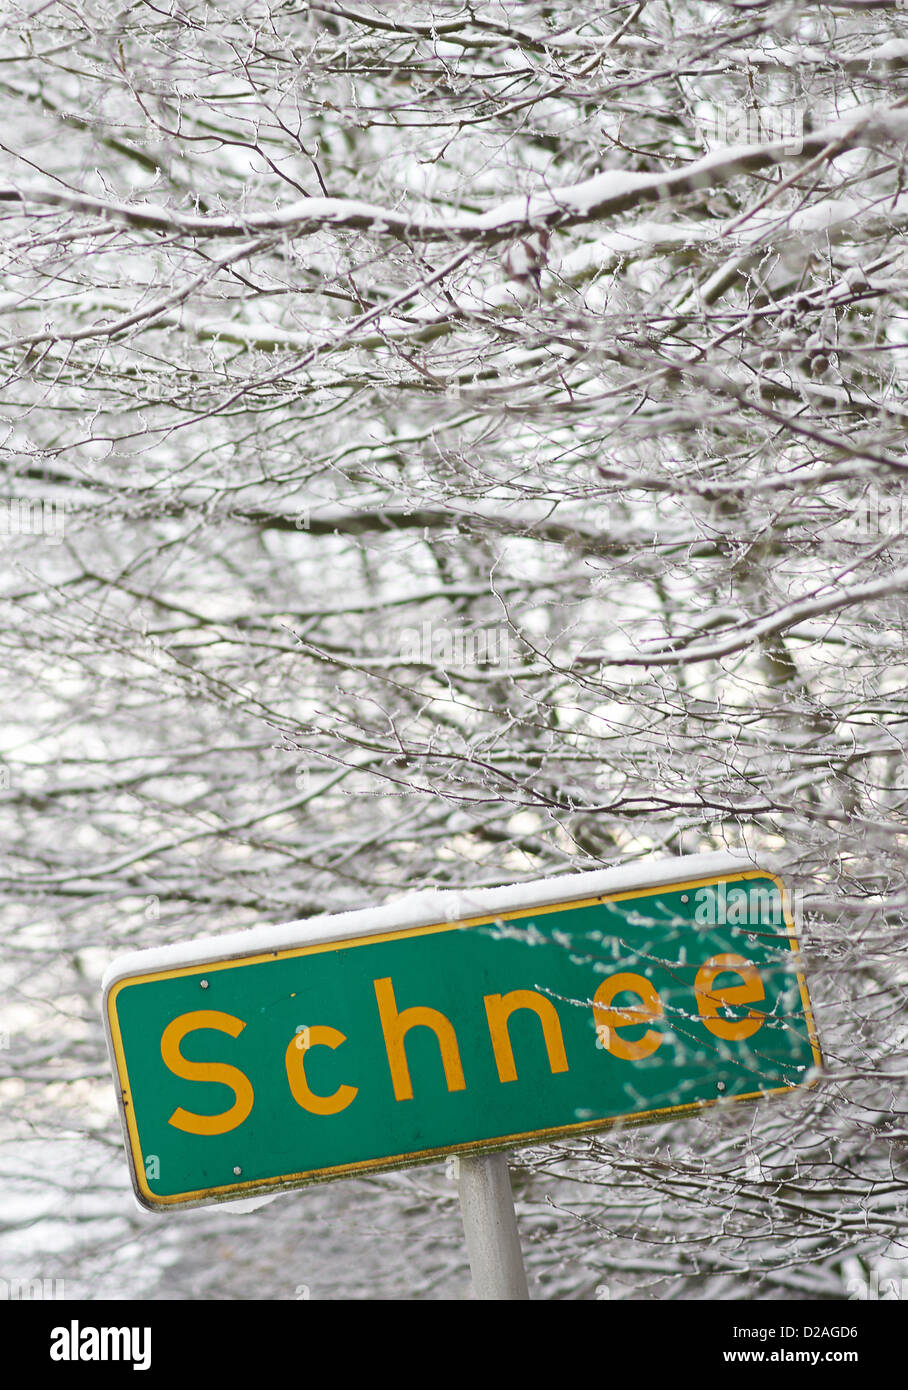 View of the place name sign of the district 'Schnee' (German for snow) in Witten, Germany, 18 January 2013. TheStock Photo